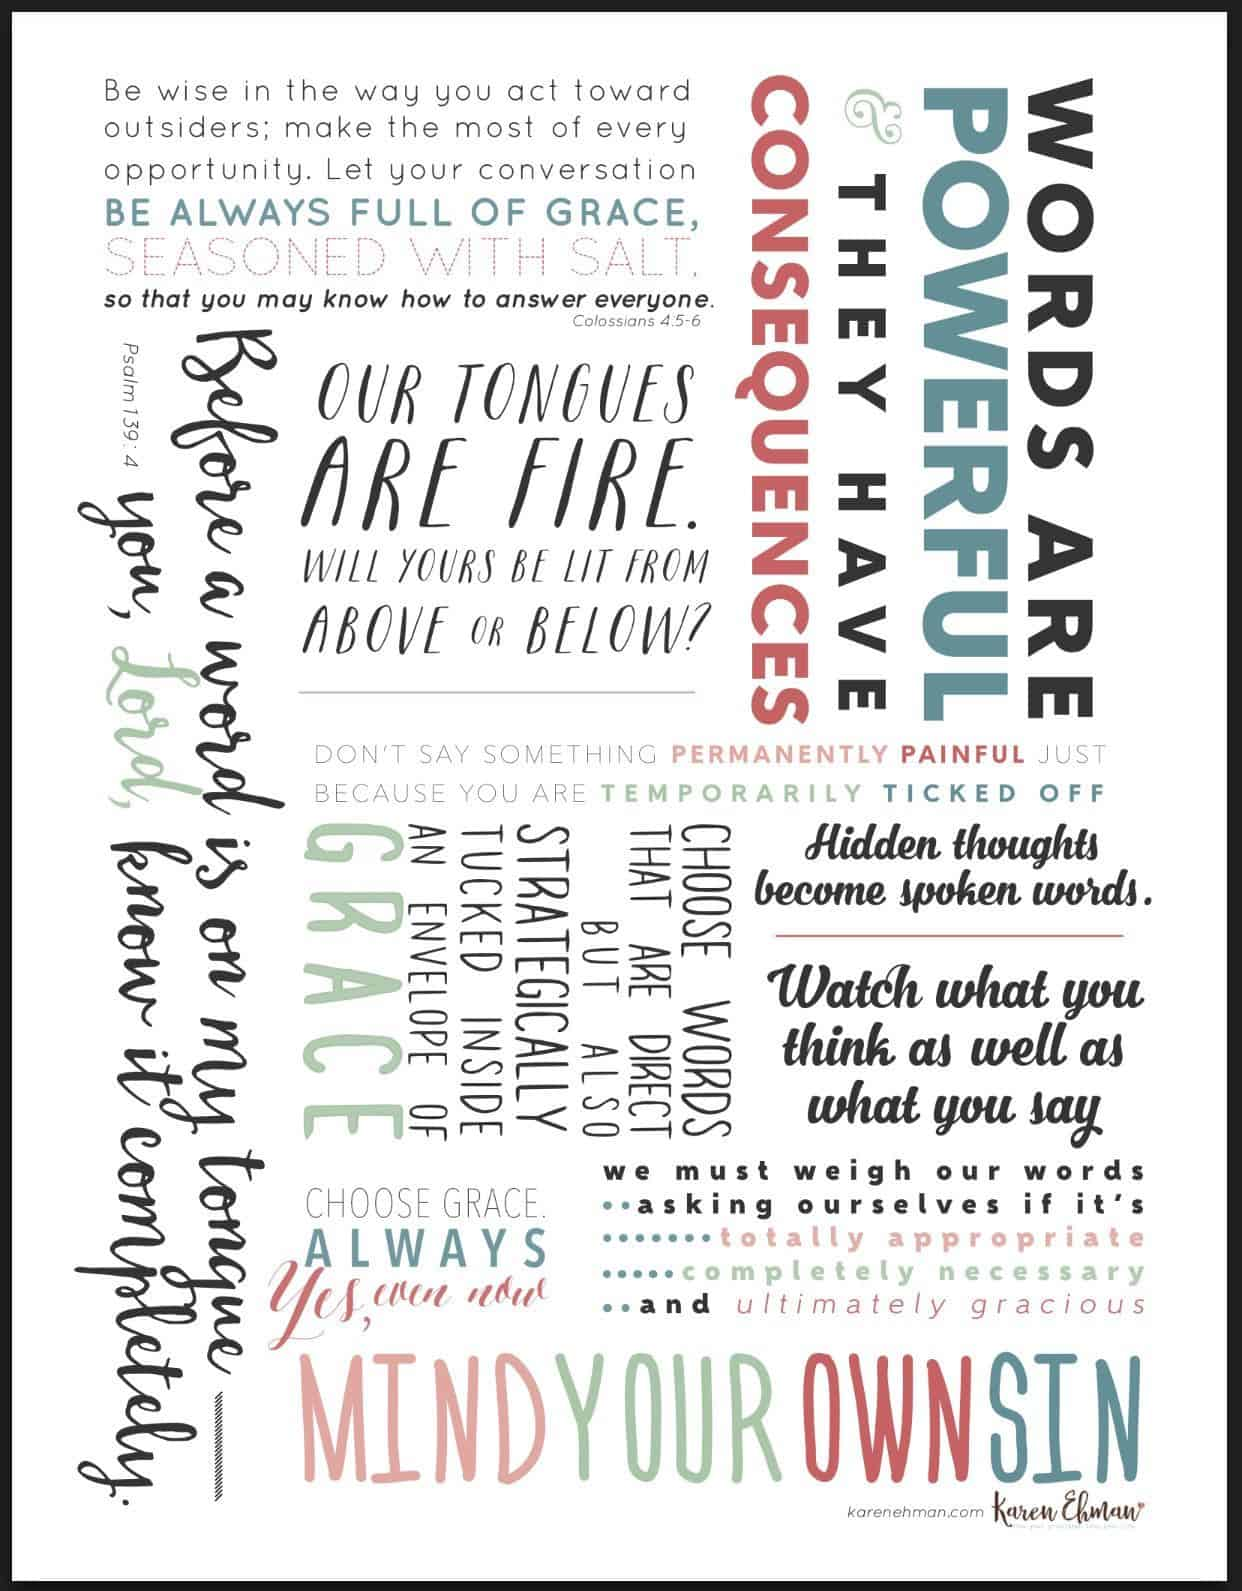 Lace your speech with grace with this FREE printable from Karen Ehman. Click here to download.